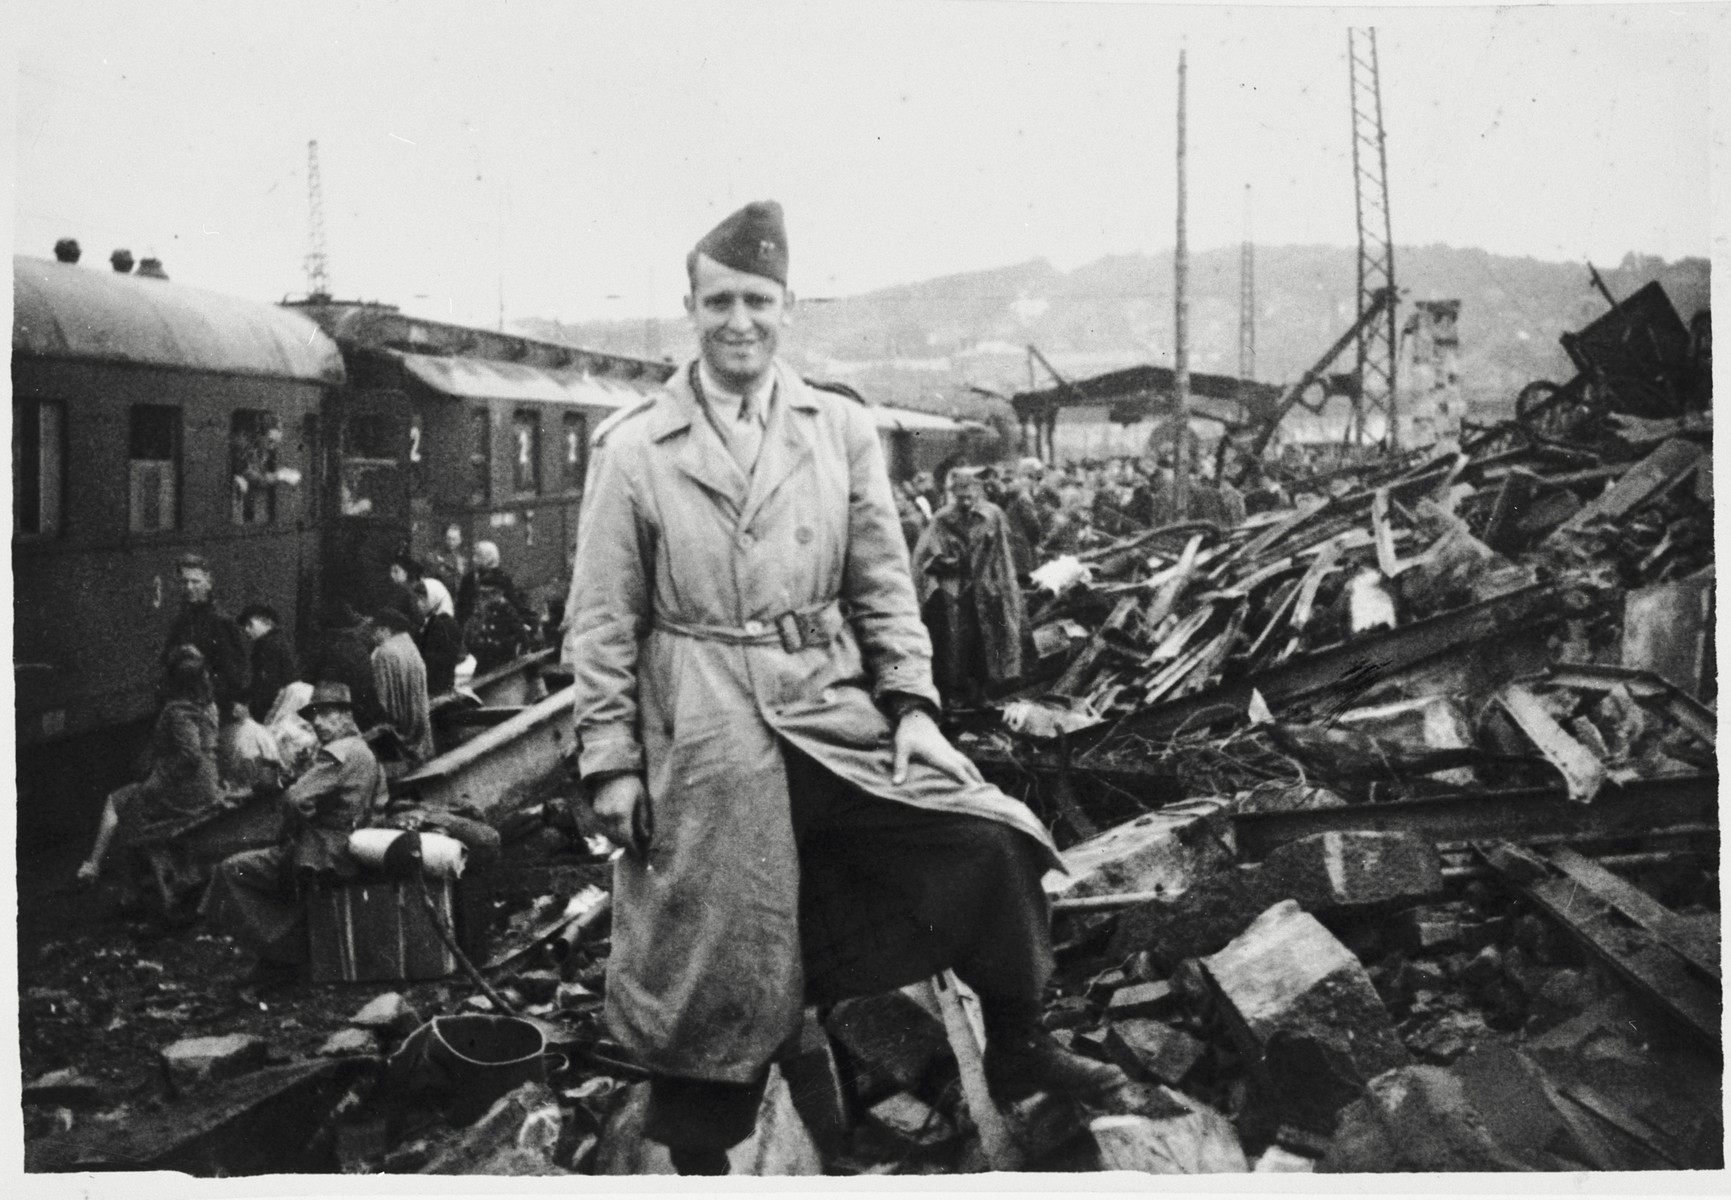 An American soldier poses next to a huge pile of rubble alongside a railroad after the war.